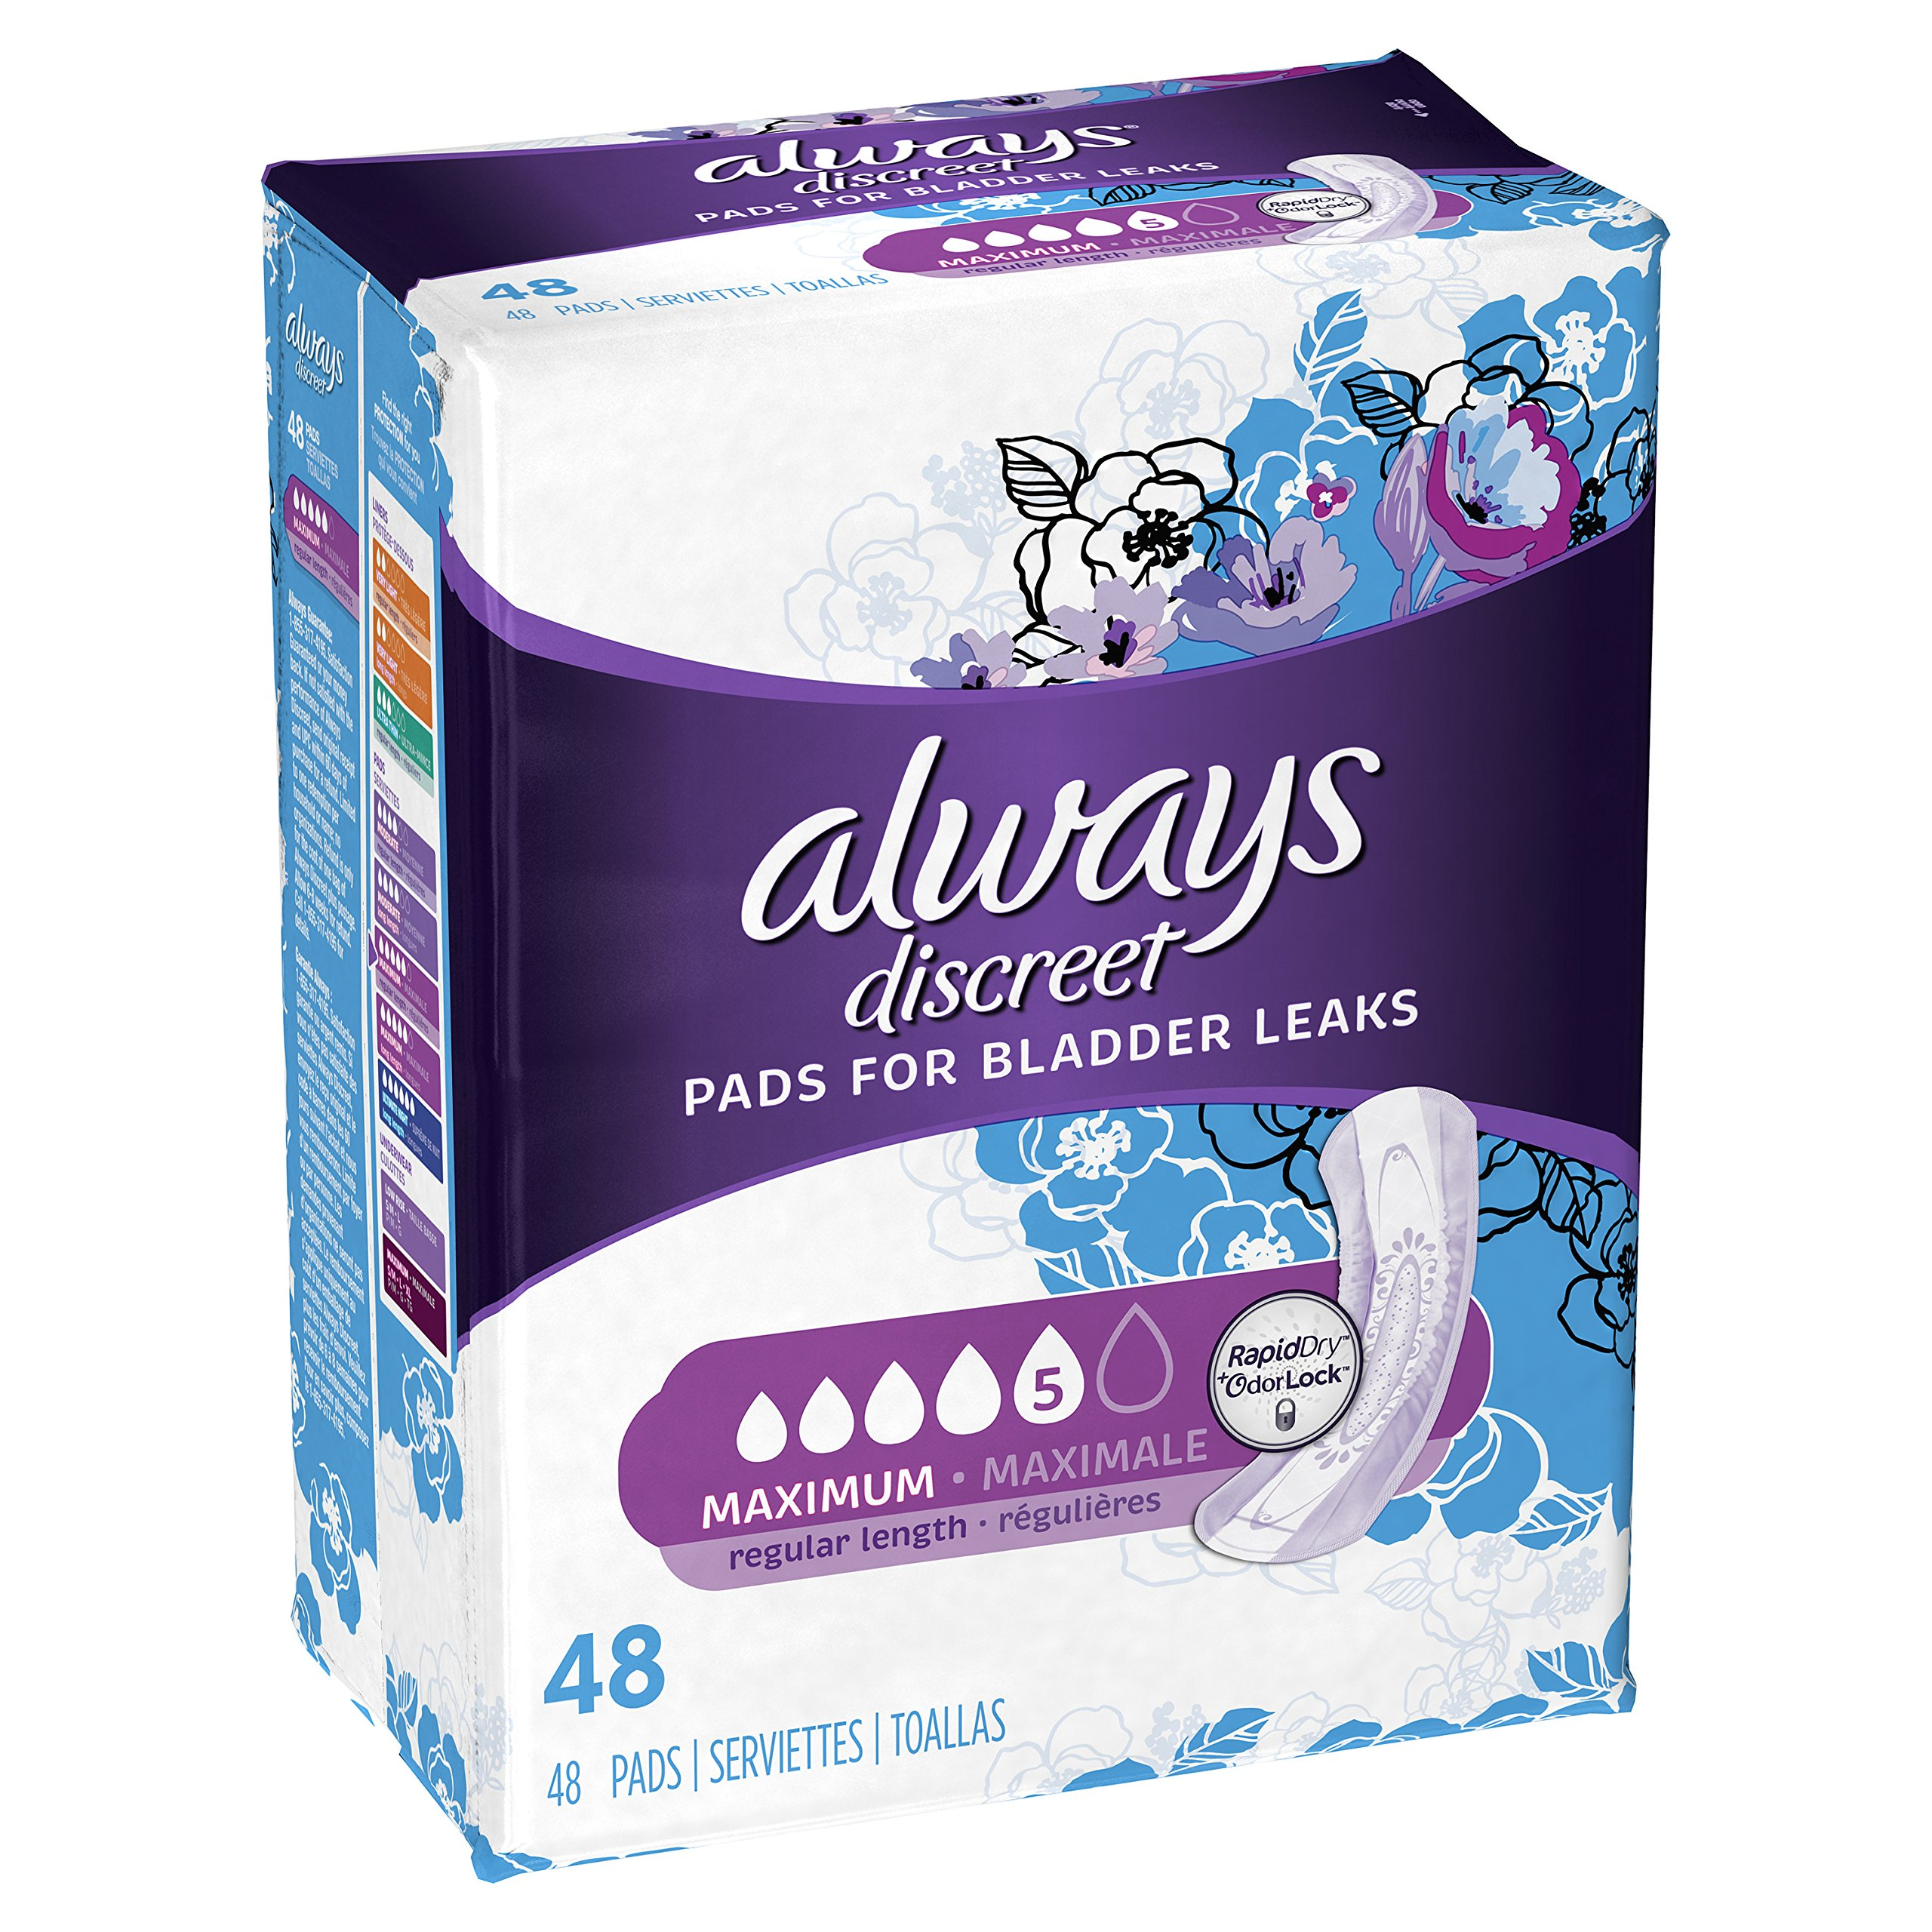 Always Discreet, Incontinence Pads, Maximum, Regular Length, 48 Count by Always Discreet (Image #2)